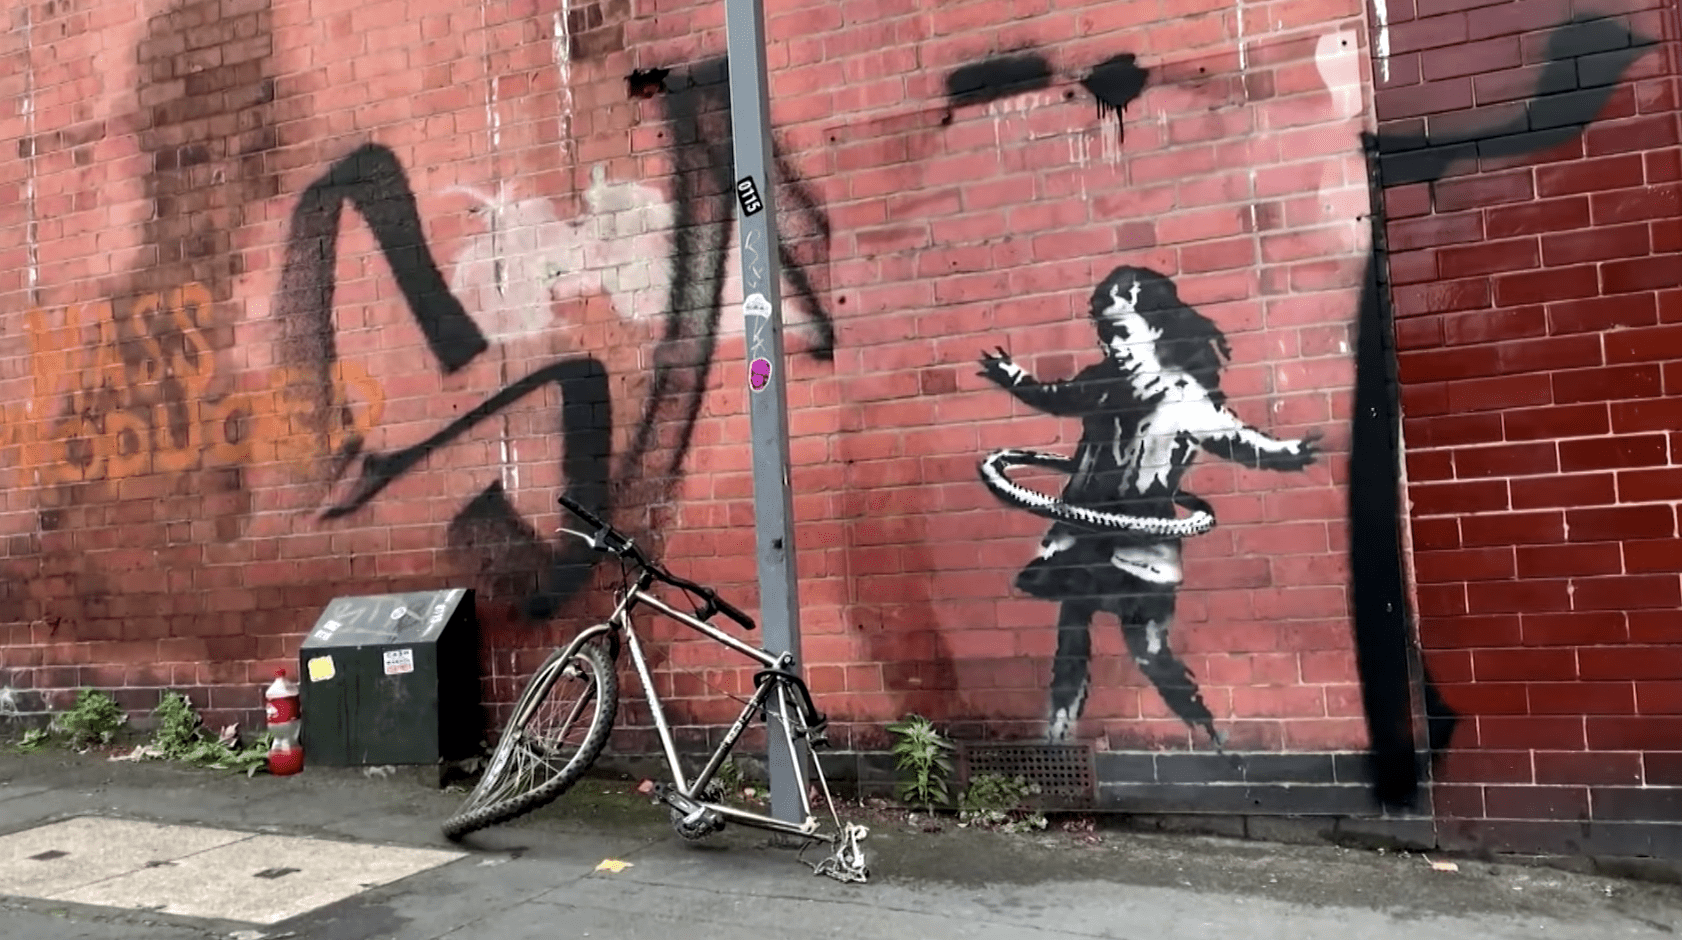 Banksy Departs From His Recent Political Art With Graffiti of a Hula-Hooping Girl